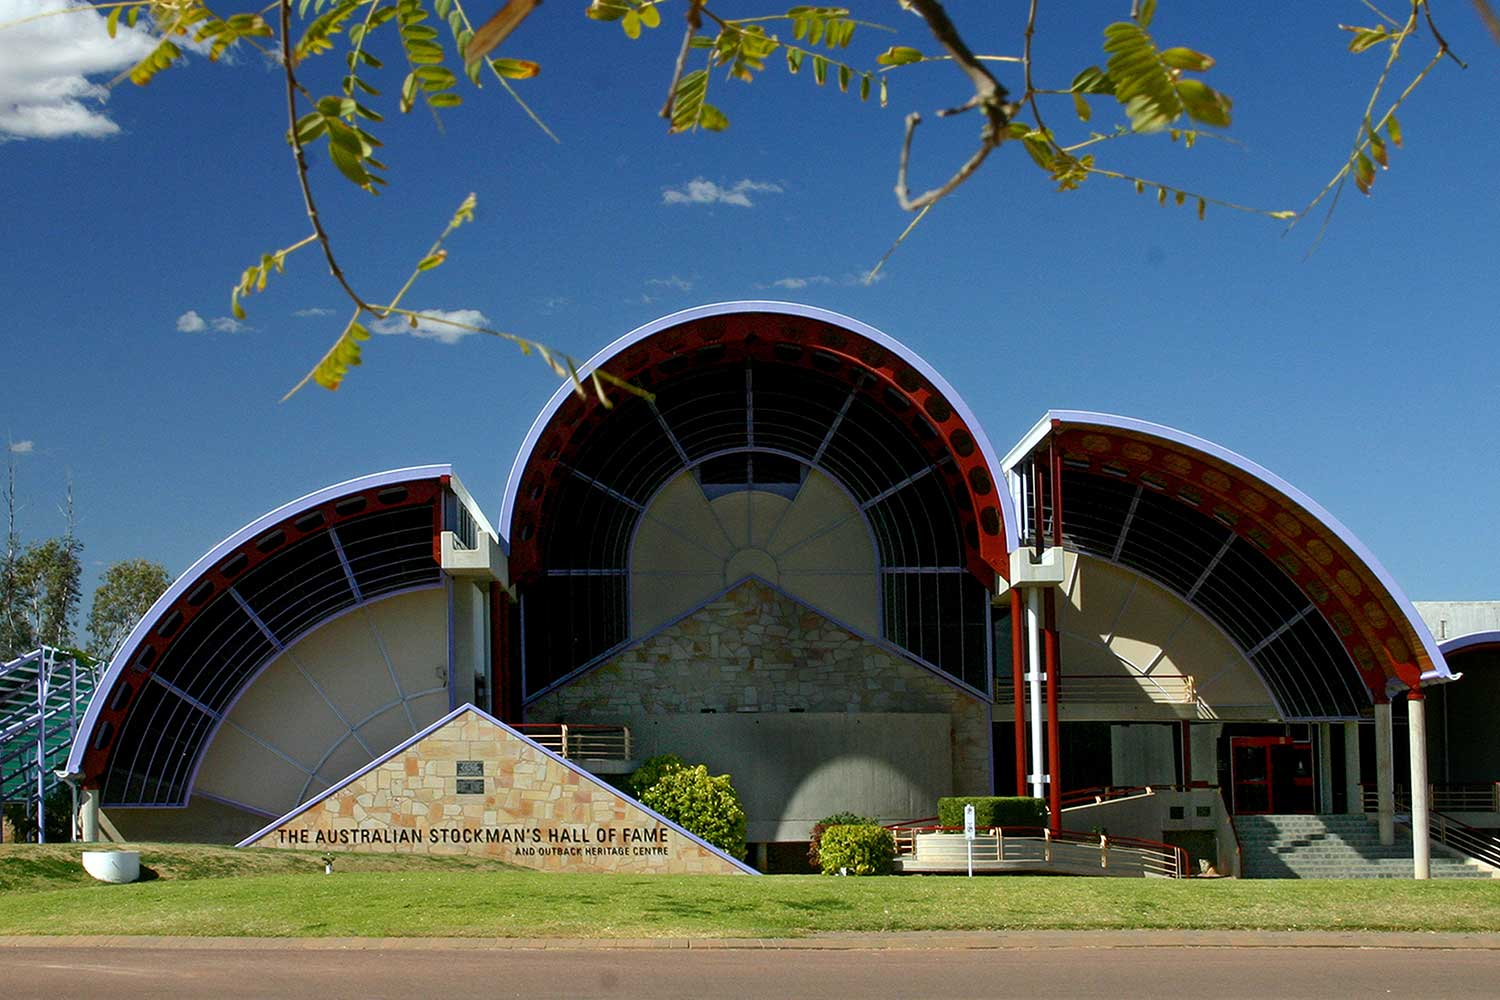 Longreach_Stockmans-hall-of-fame